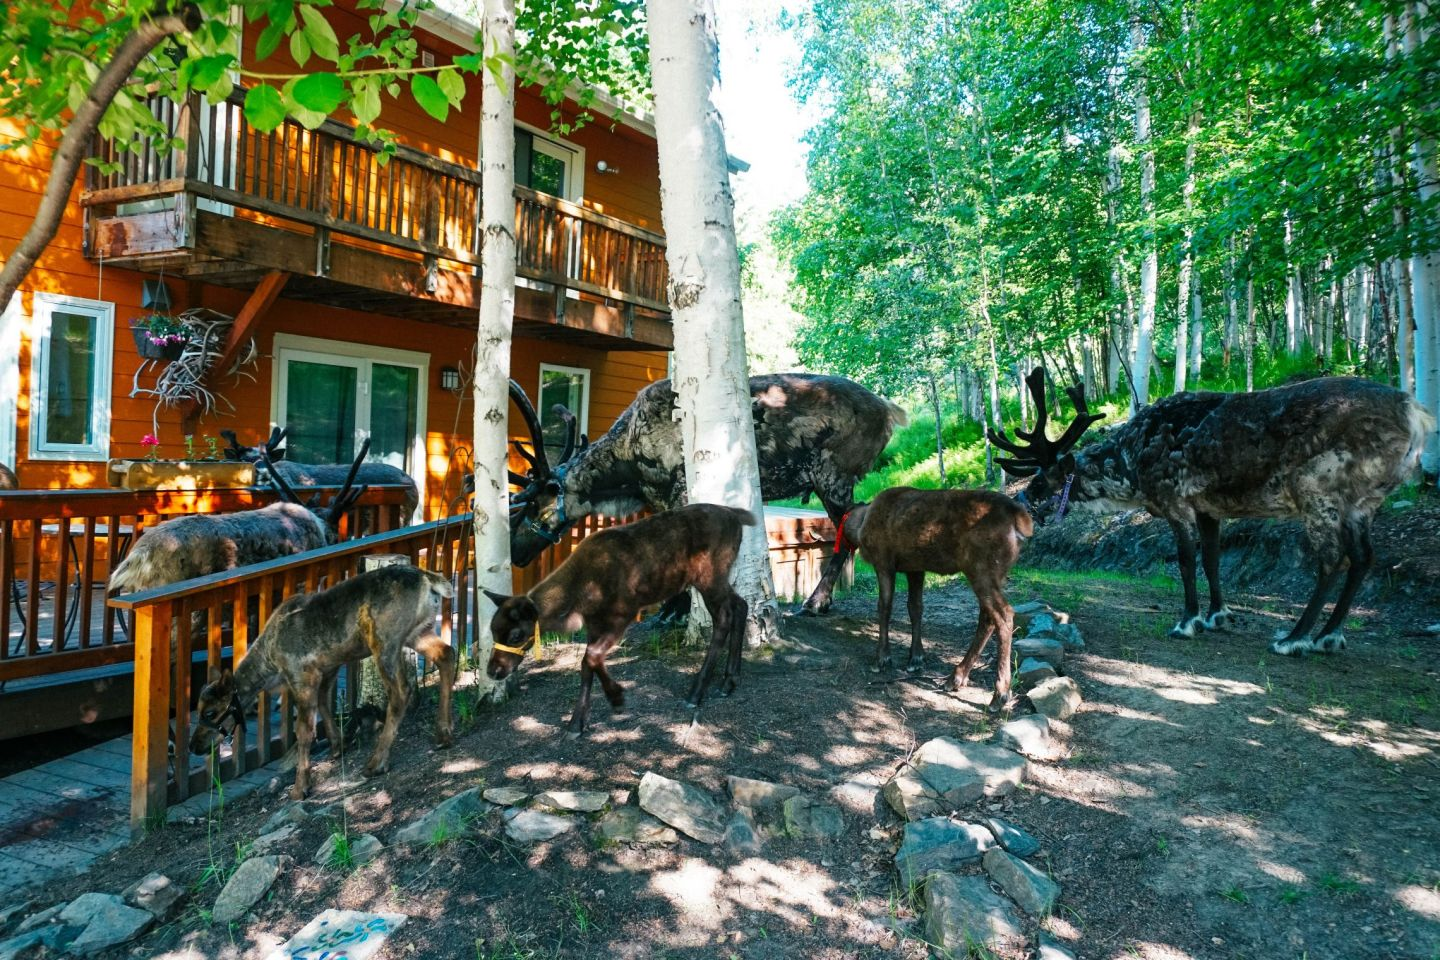 At Fairbanks, Alaska's Running Reindeer Ranch you can frolic and pet reindeer, even babies!